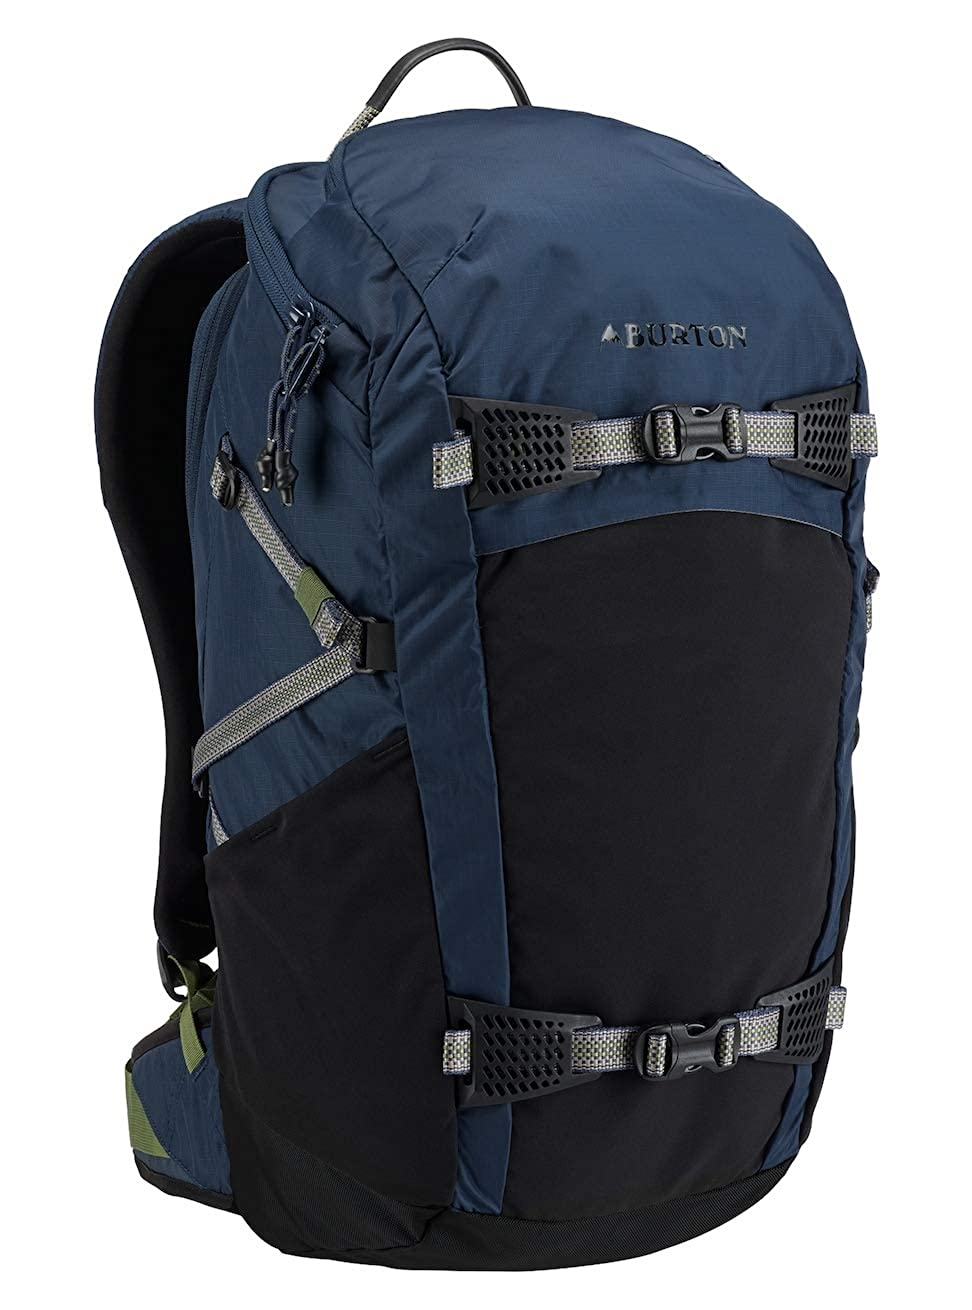 Burton Day Hiker 31l Snow Backpack Mood Indigo Rip Cordura 51 x 28 x 16 cm BRRS5|#Burton 17292104414